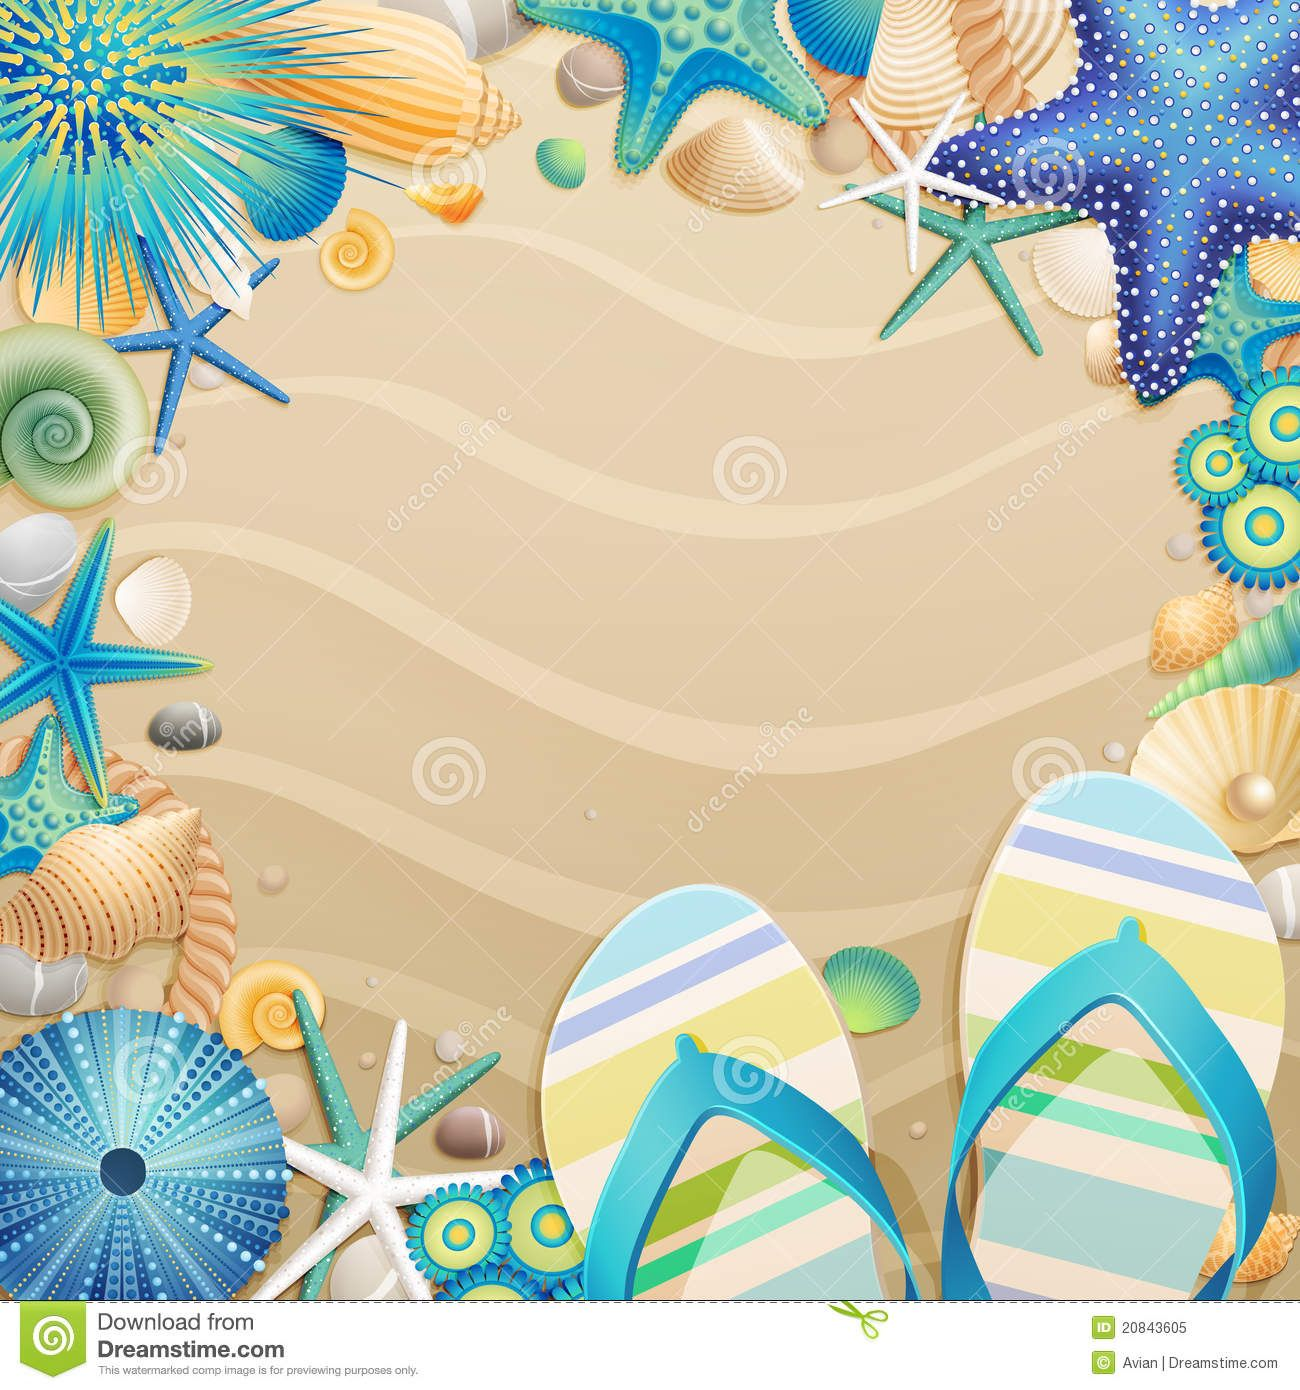 free clipart images of flip flops on the beach.